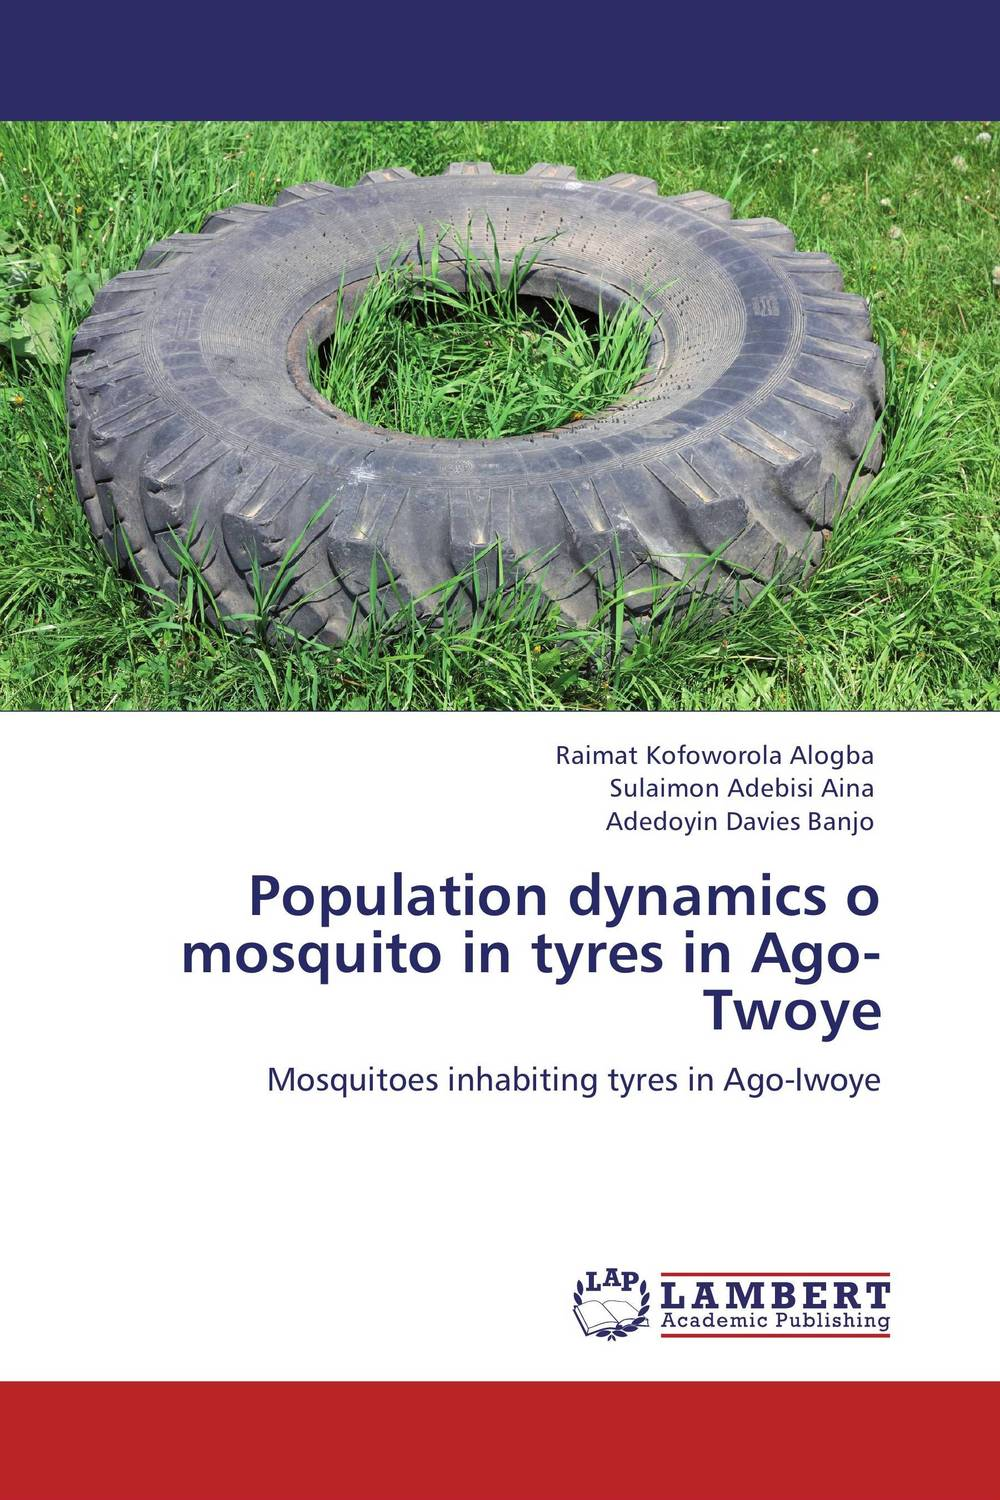 Population dynamics o mosquito in tyres in Ago-Twoye fatal misconception – the struggle to control world population